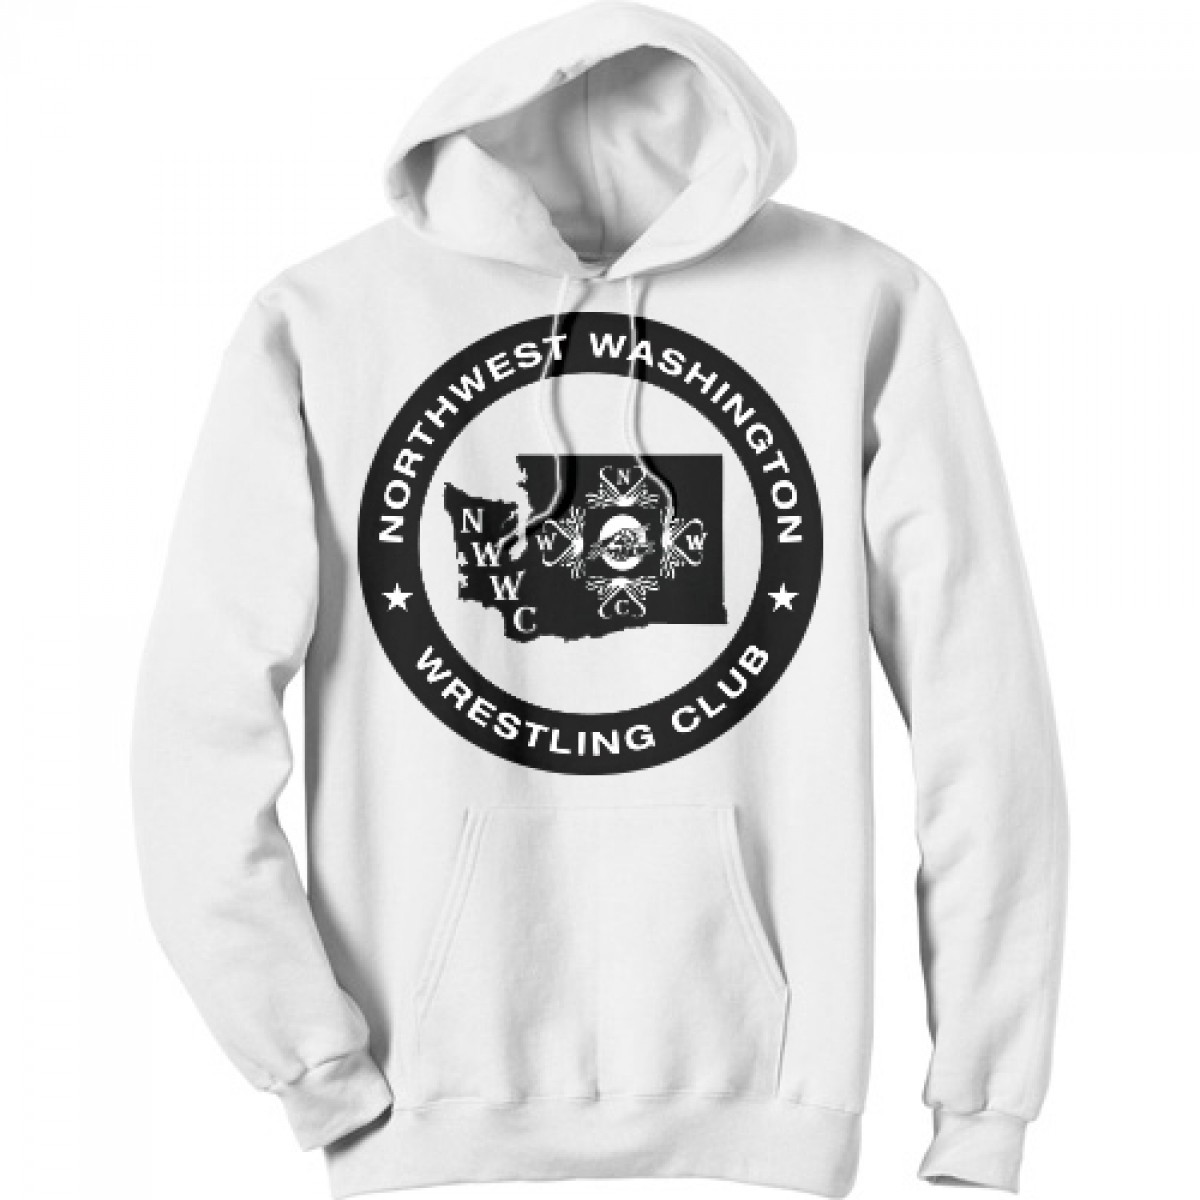 NWWC white hoodie with the main logo in black-White-S